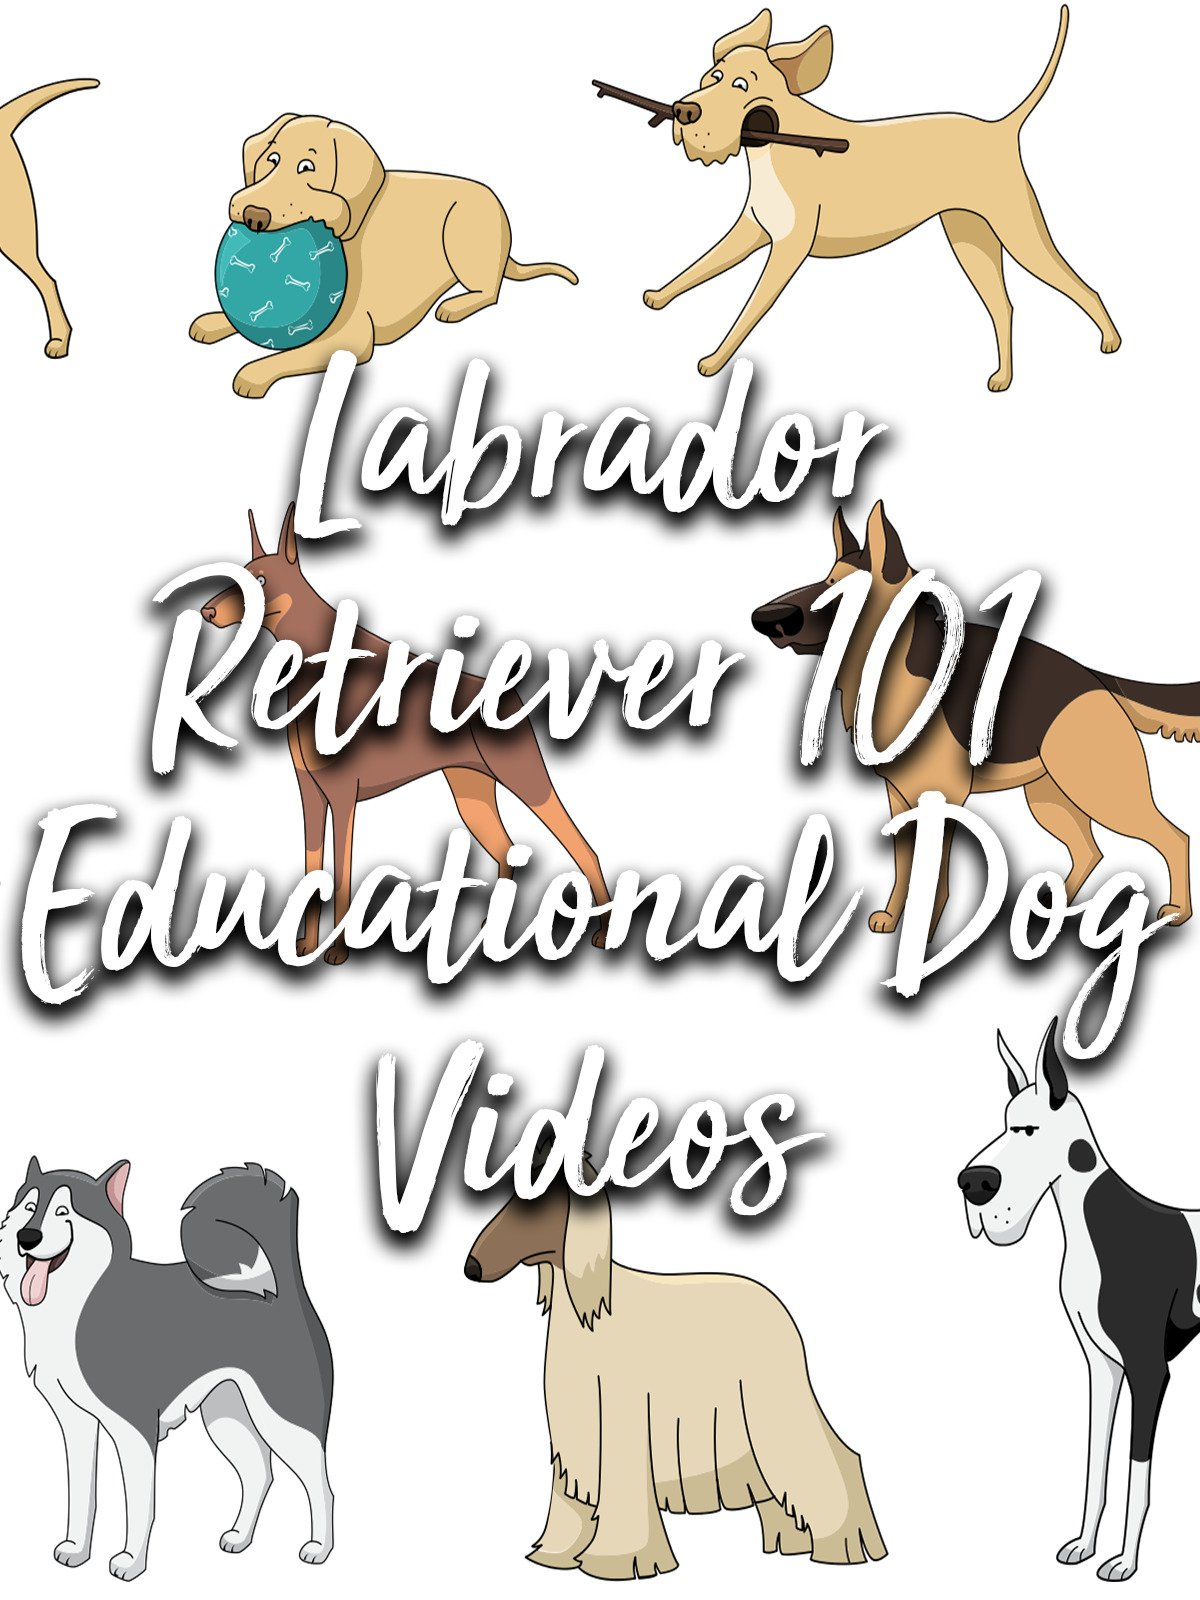 Labrador Retriever 101 Educational Dog Video